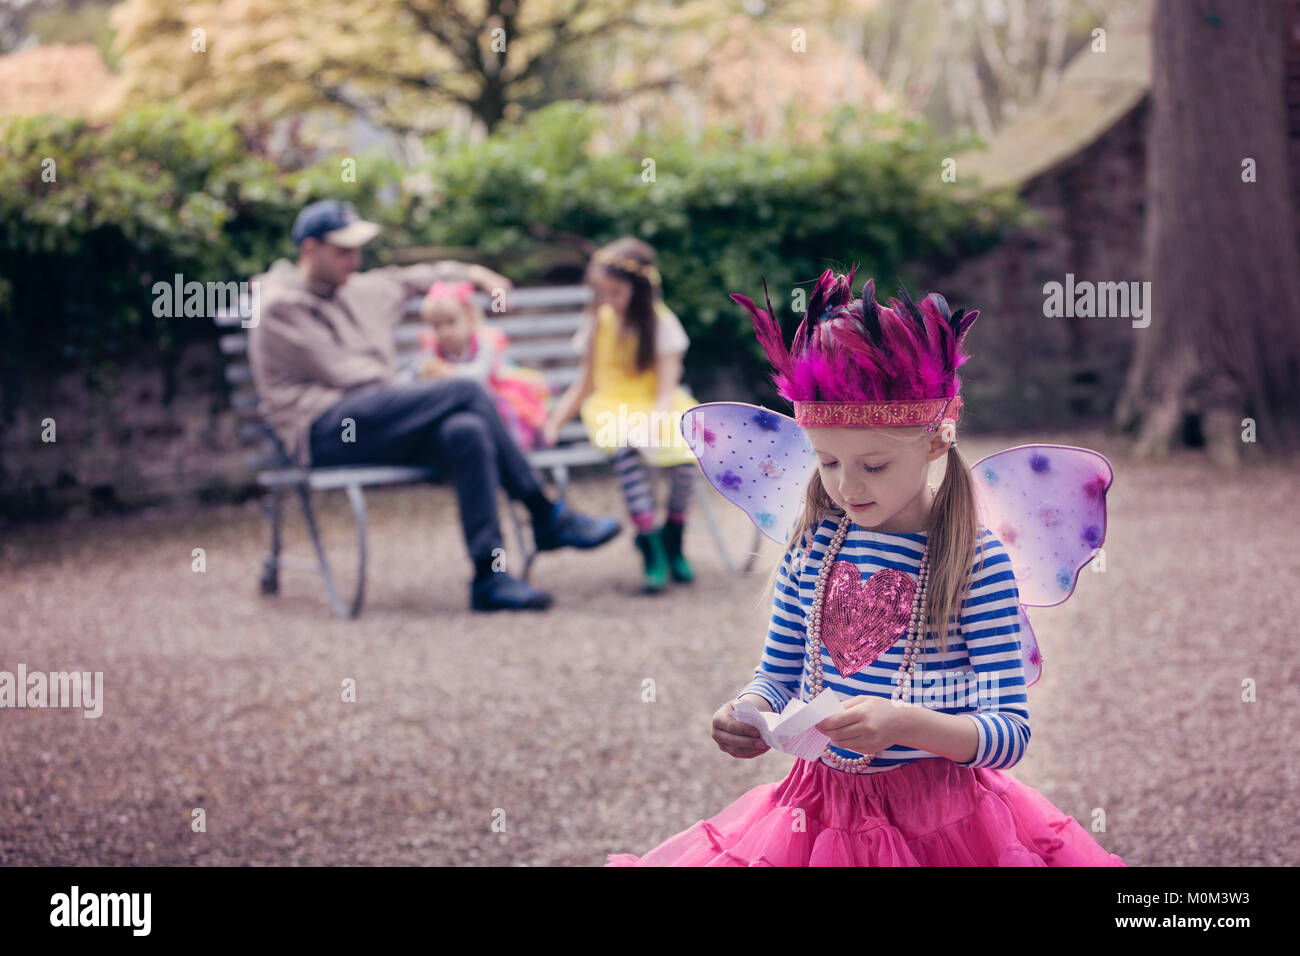 Girl in fairy costume, reading a letter, with family in the background - Stock Image